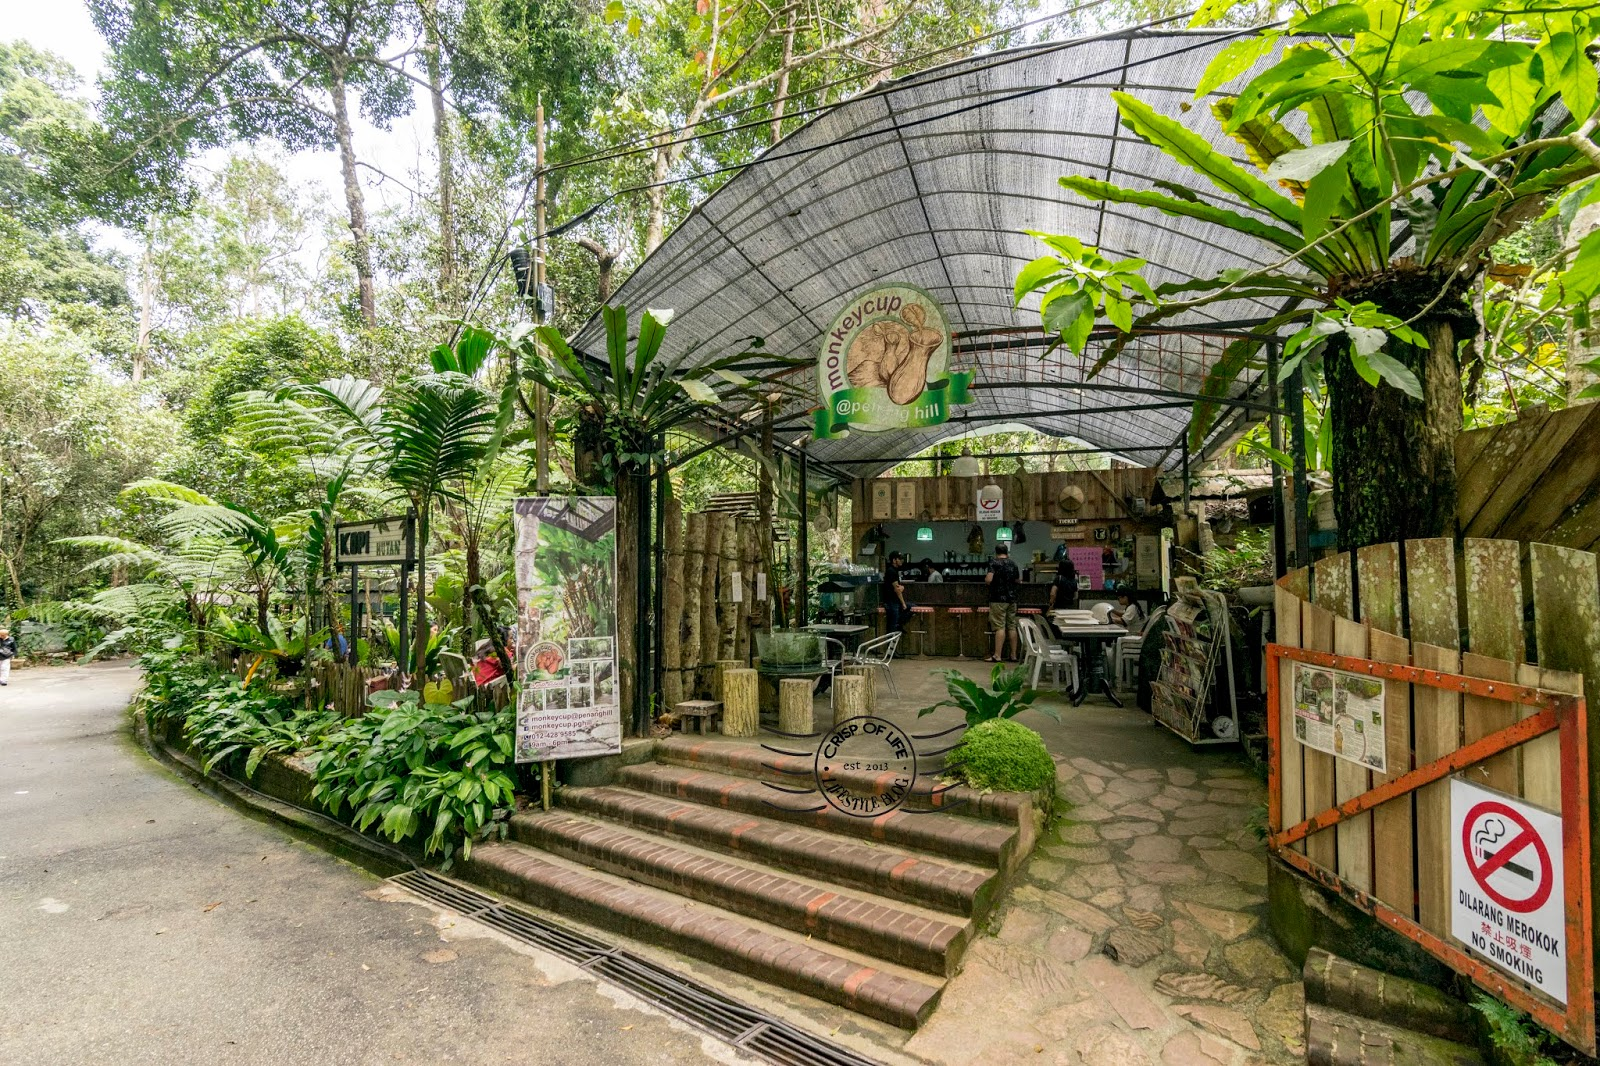 The Cafe in the Highest Point of Penang - Kopi Hutan Monkey Cup Cafe @ Penang Hill